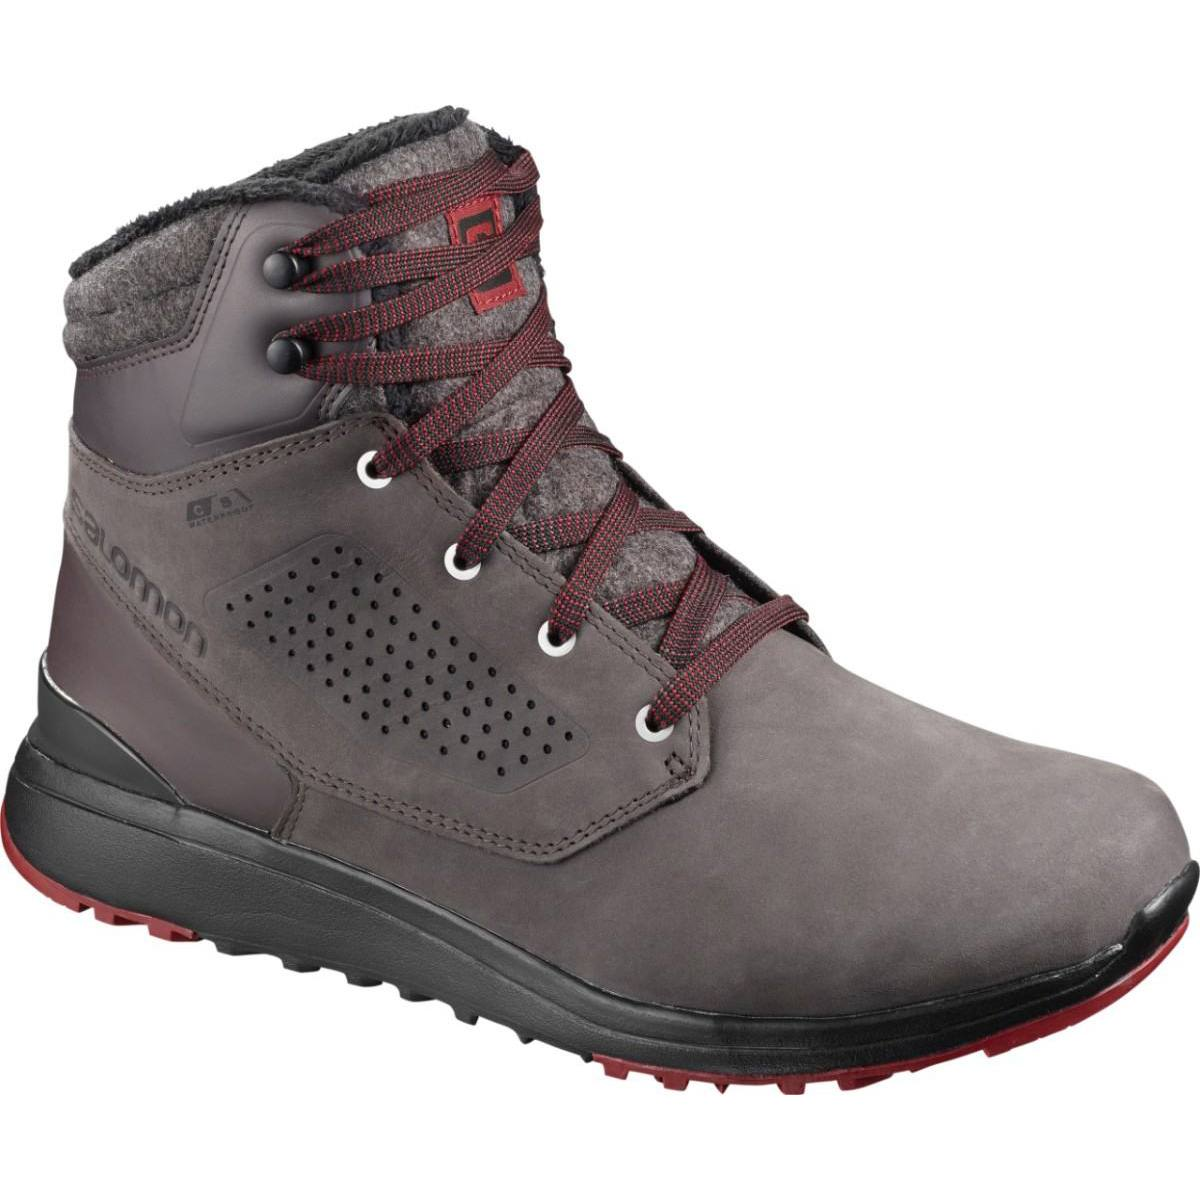 Ghete activitati urbane Salomon UTILITY WINTER CS WP - Gri